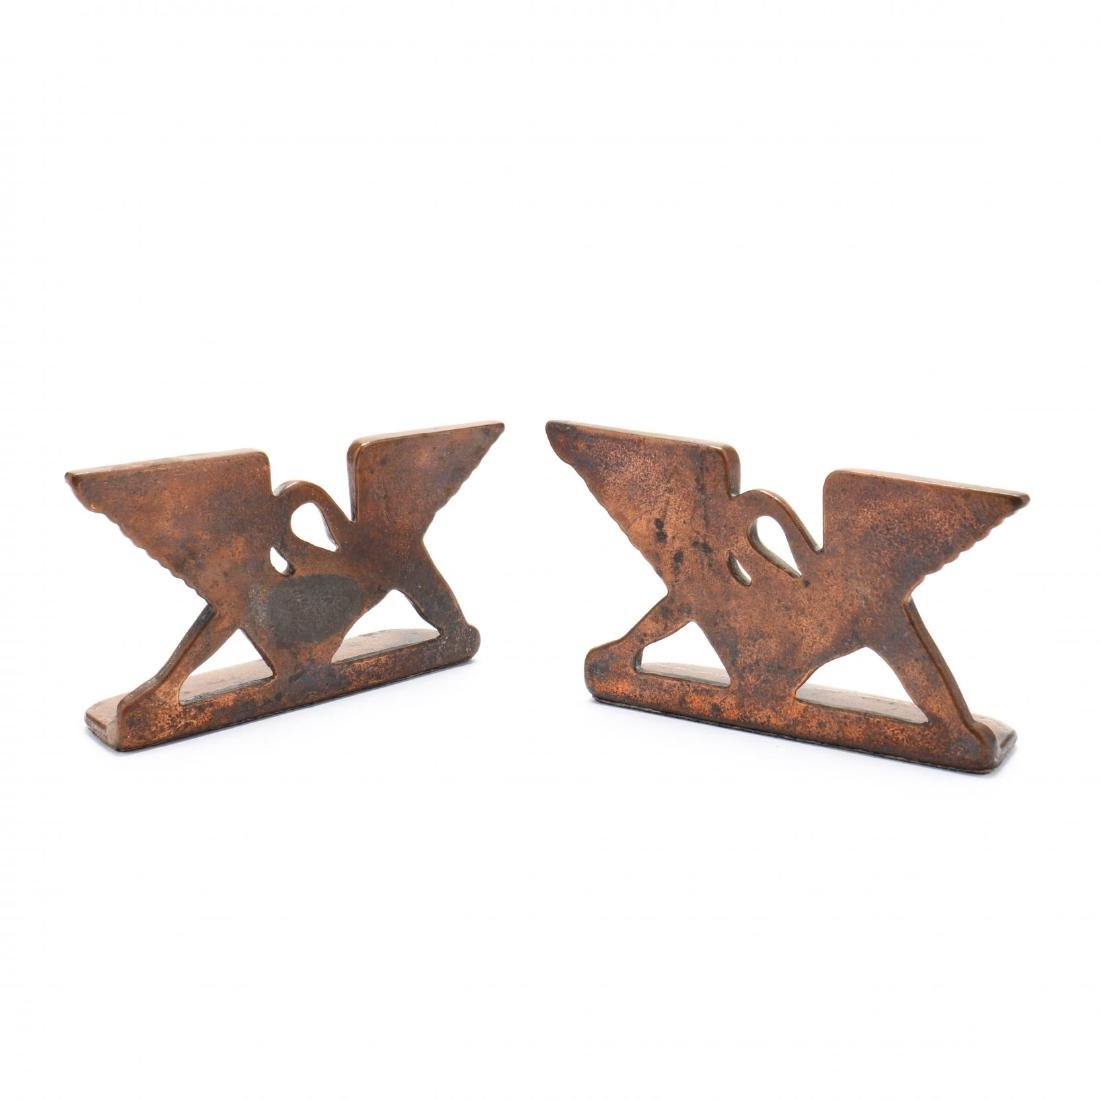 A Pair of Art Deco Bookends - 2